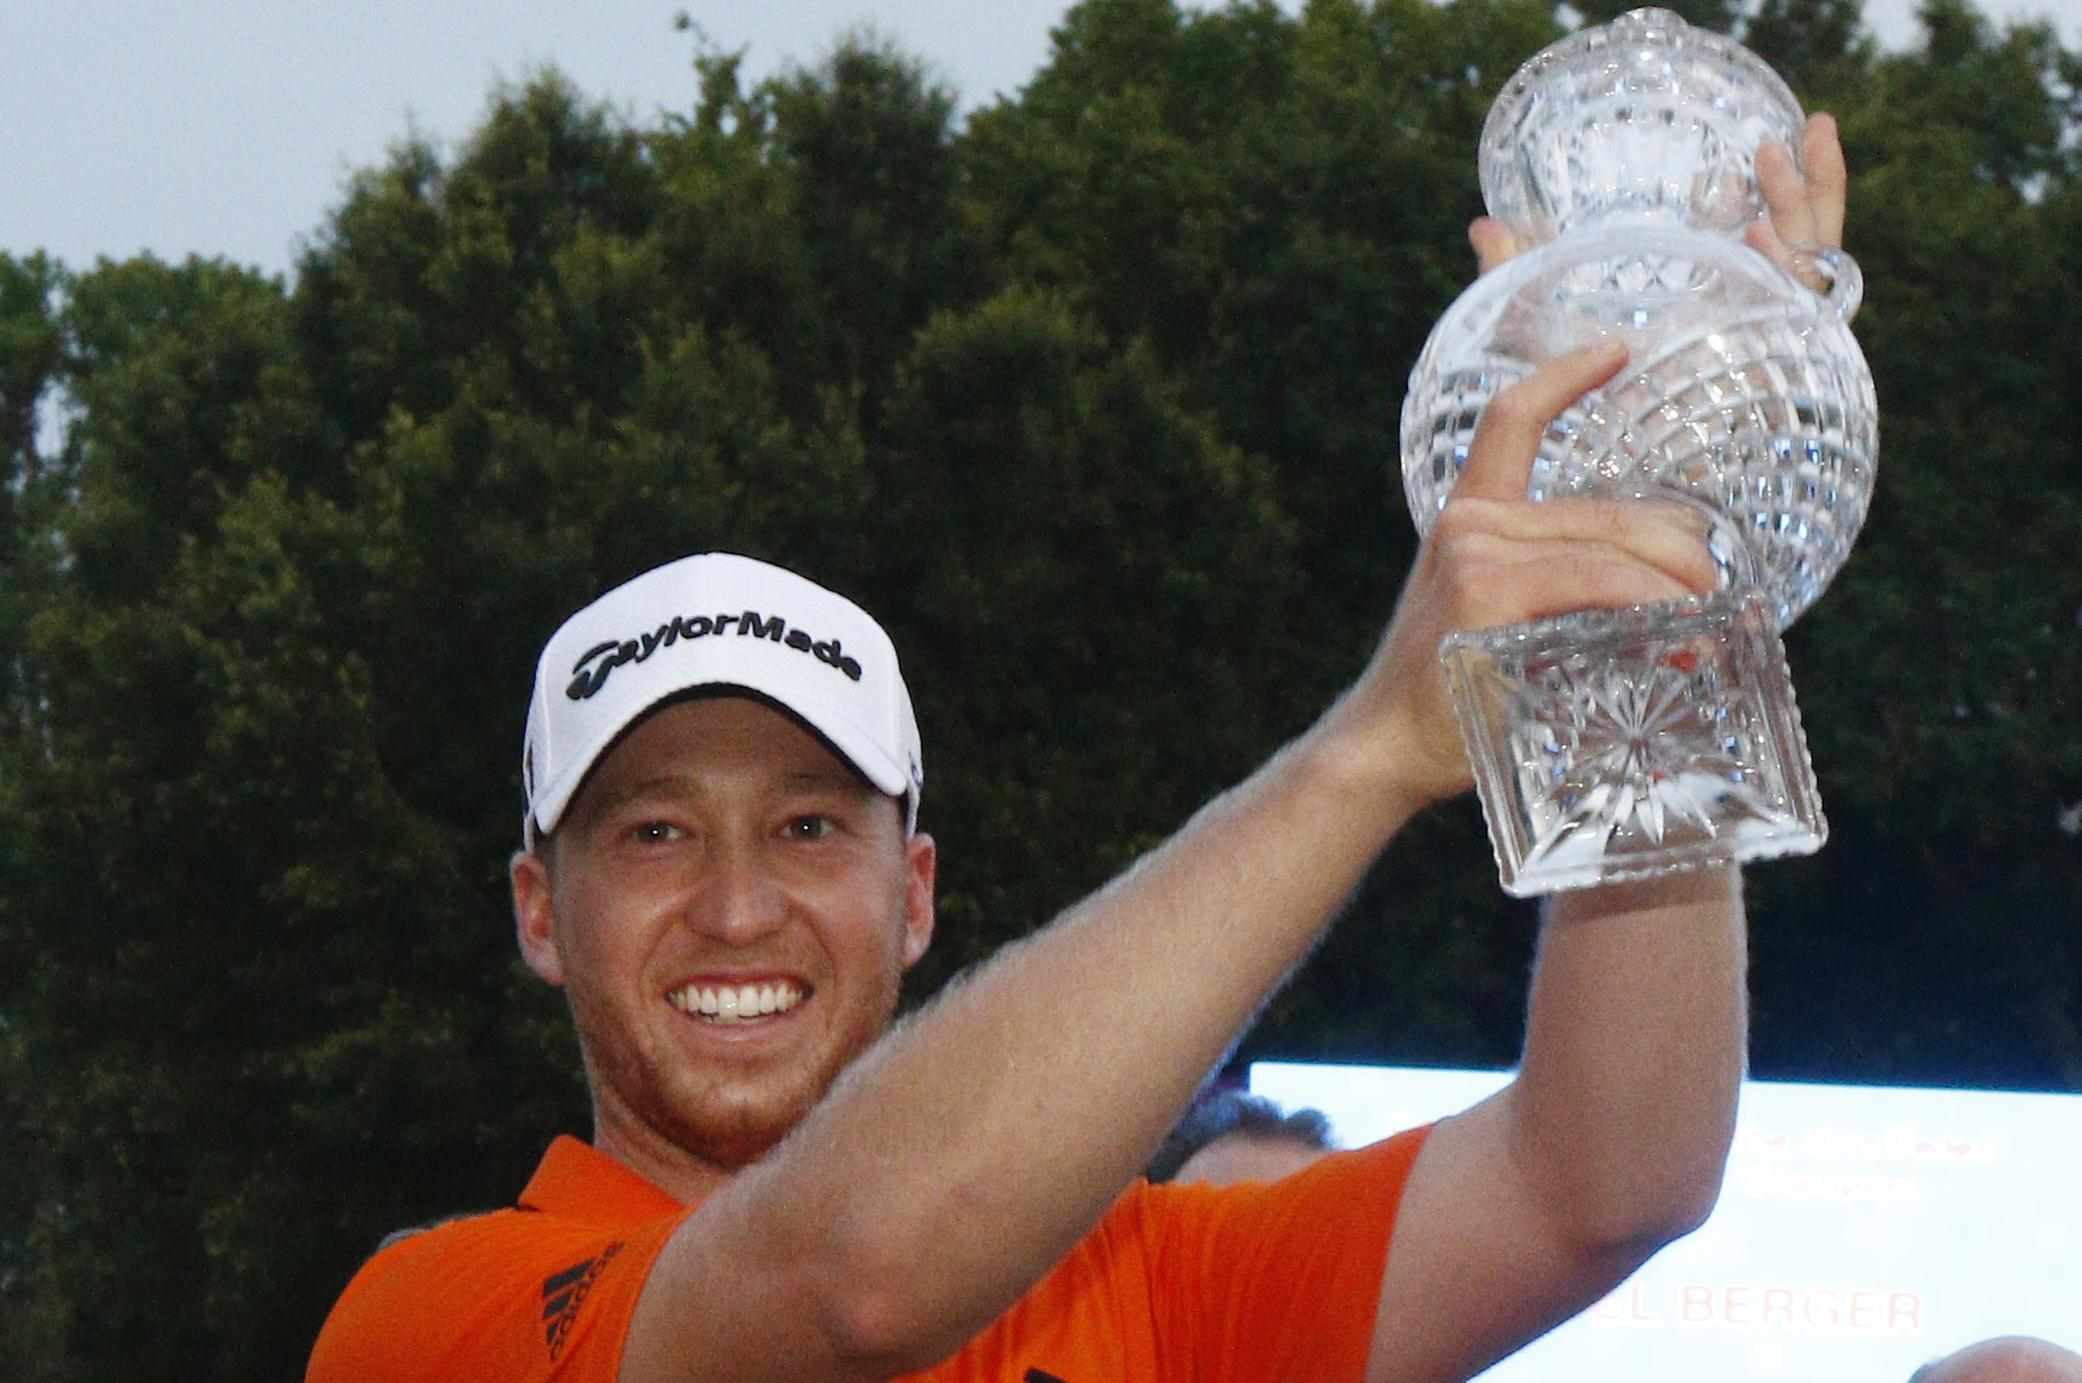 Phil Mickelson Rickie Fowler Among Top Names At St Jude Classic